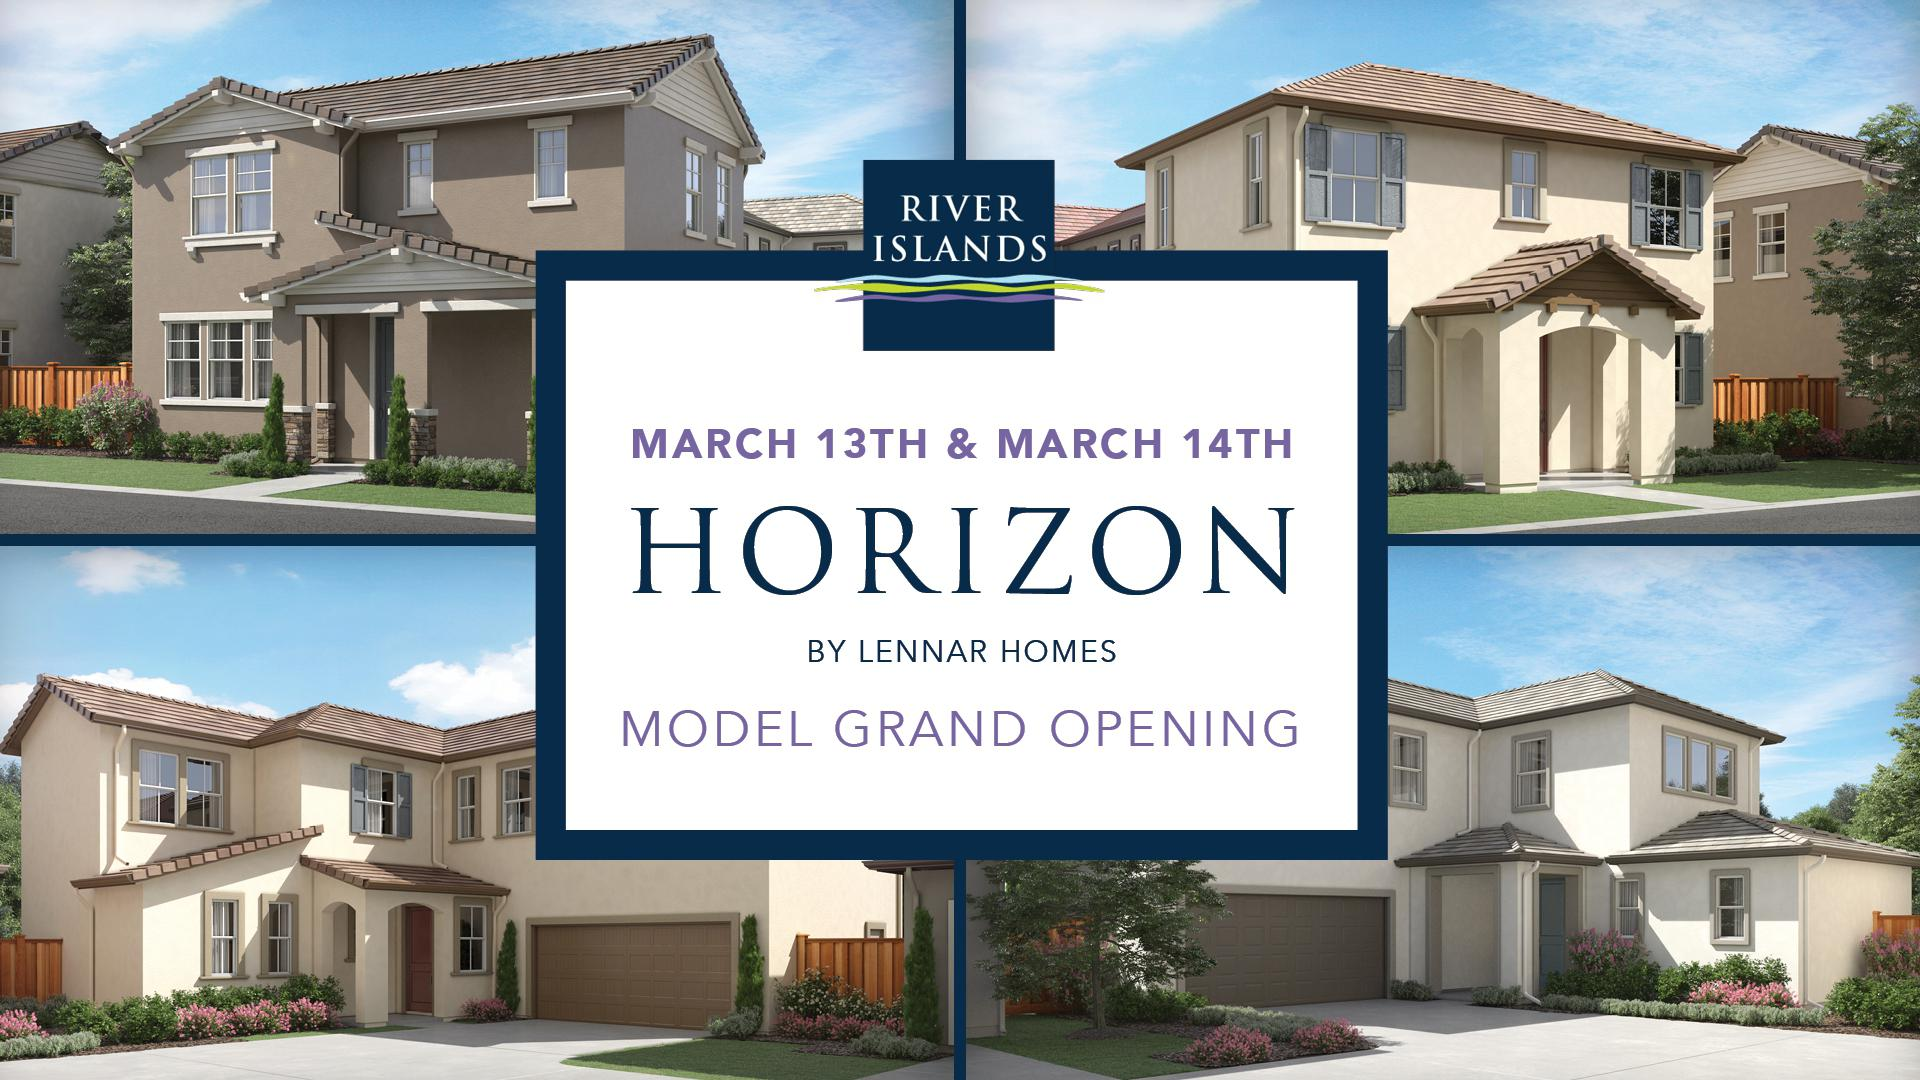 Horizon by Lennar Homes at River Islands